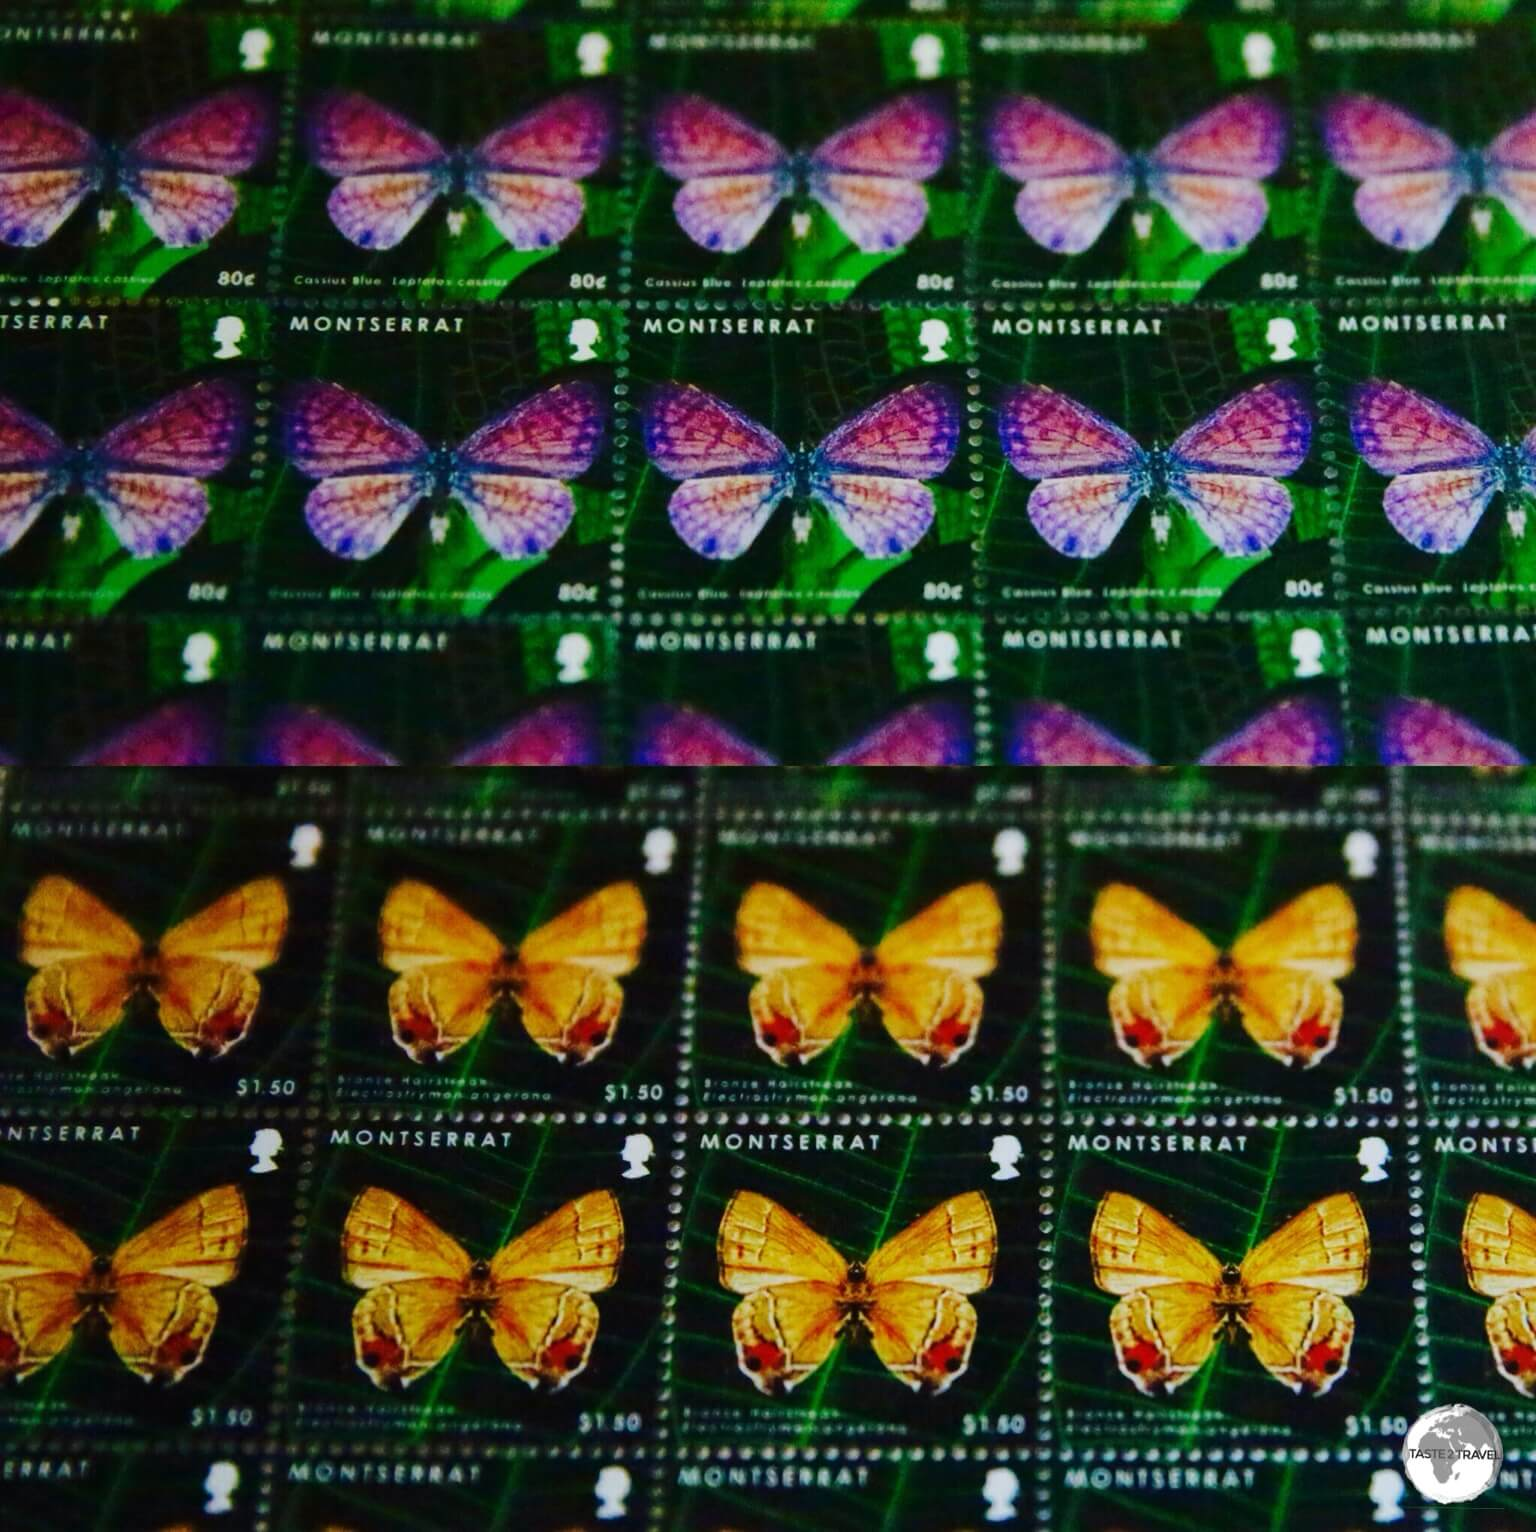 The colourful fauna and flora of Montserrat are favourite subjects for stamp issues.